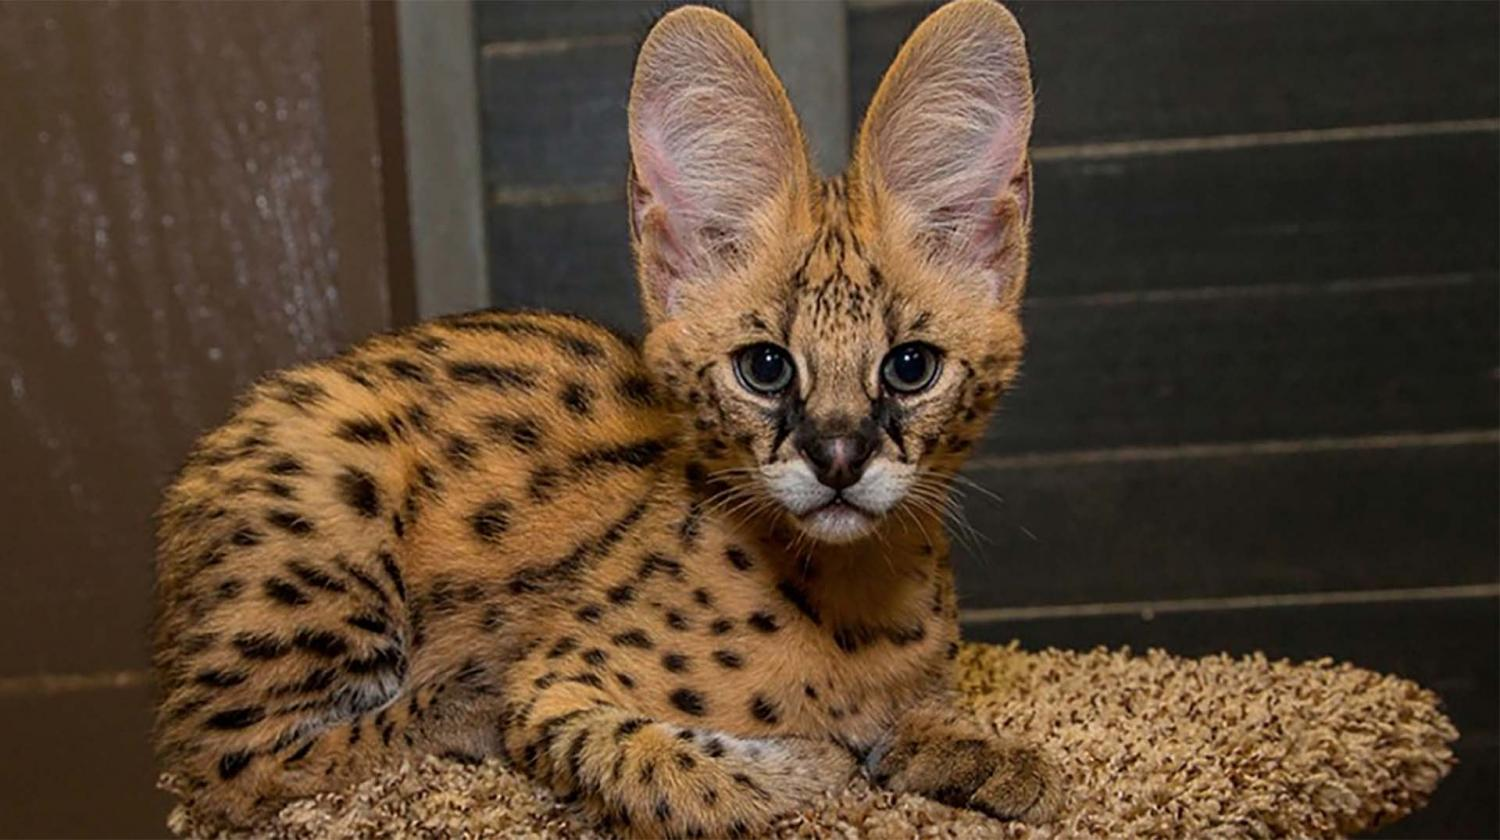 Serval kittens for sale cats Buy or For Sale price